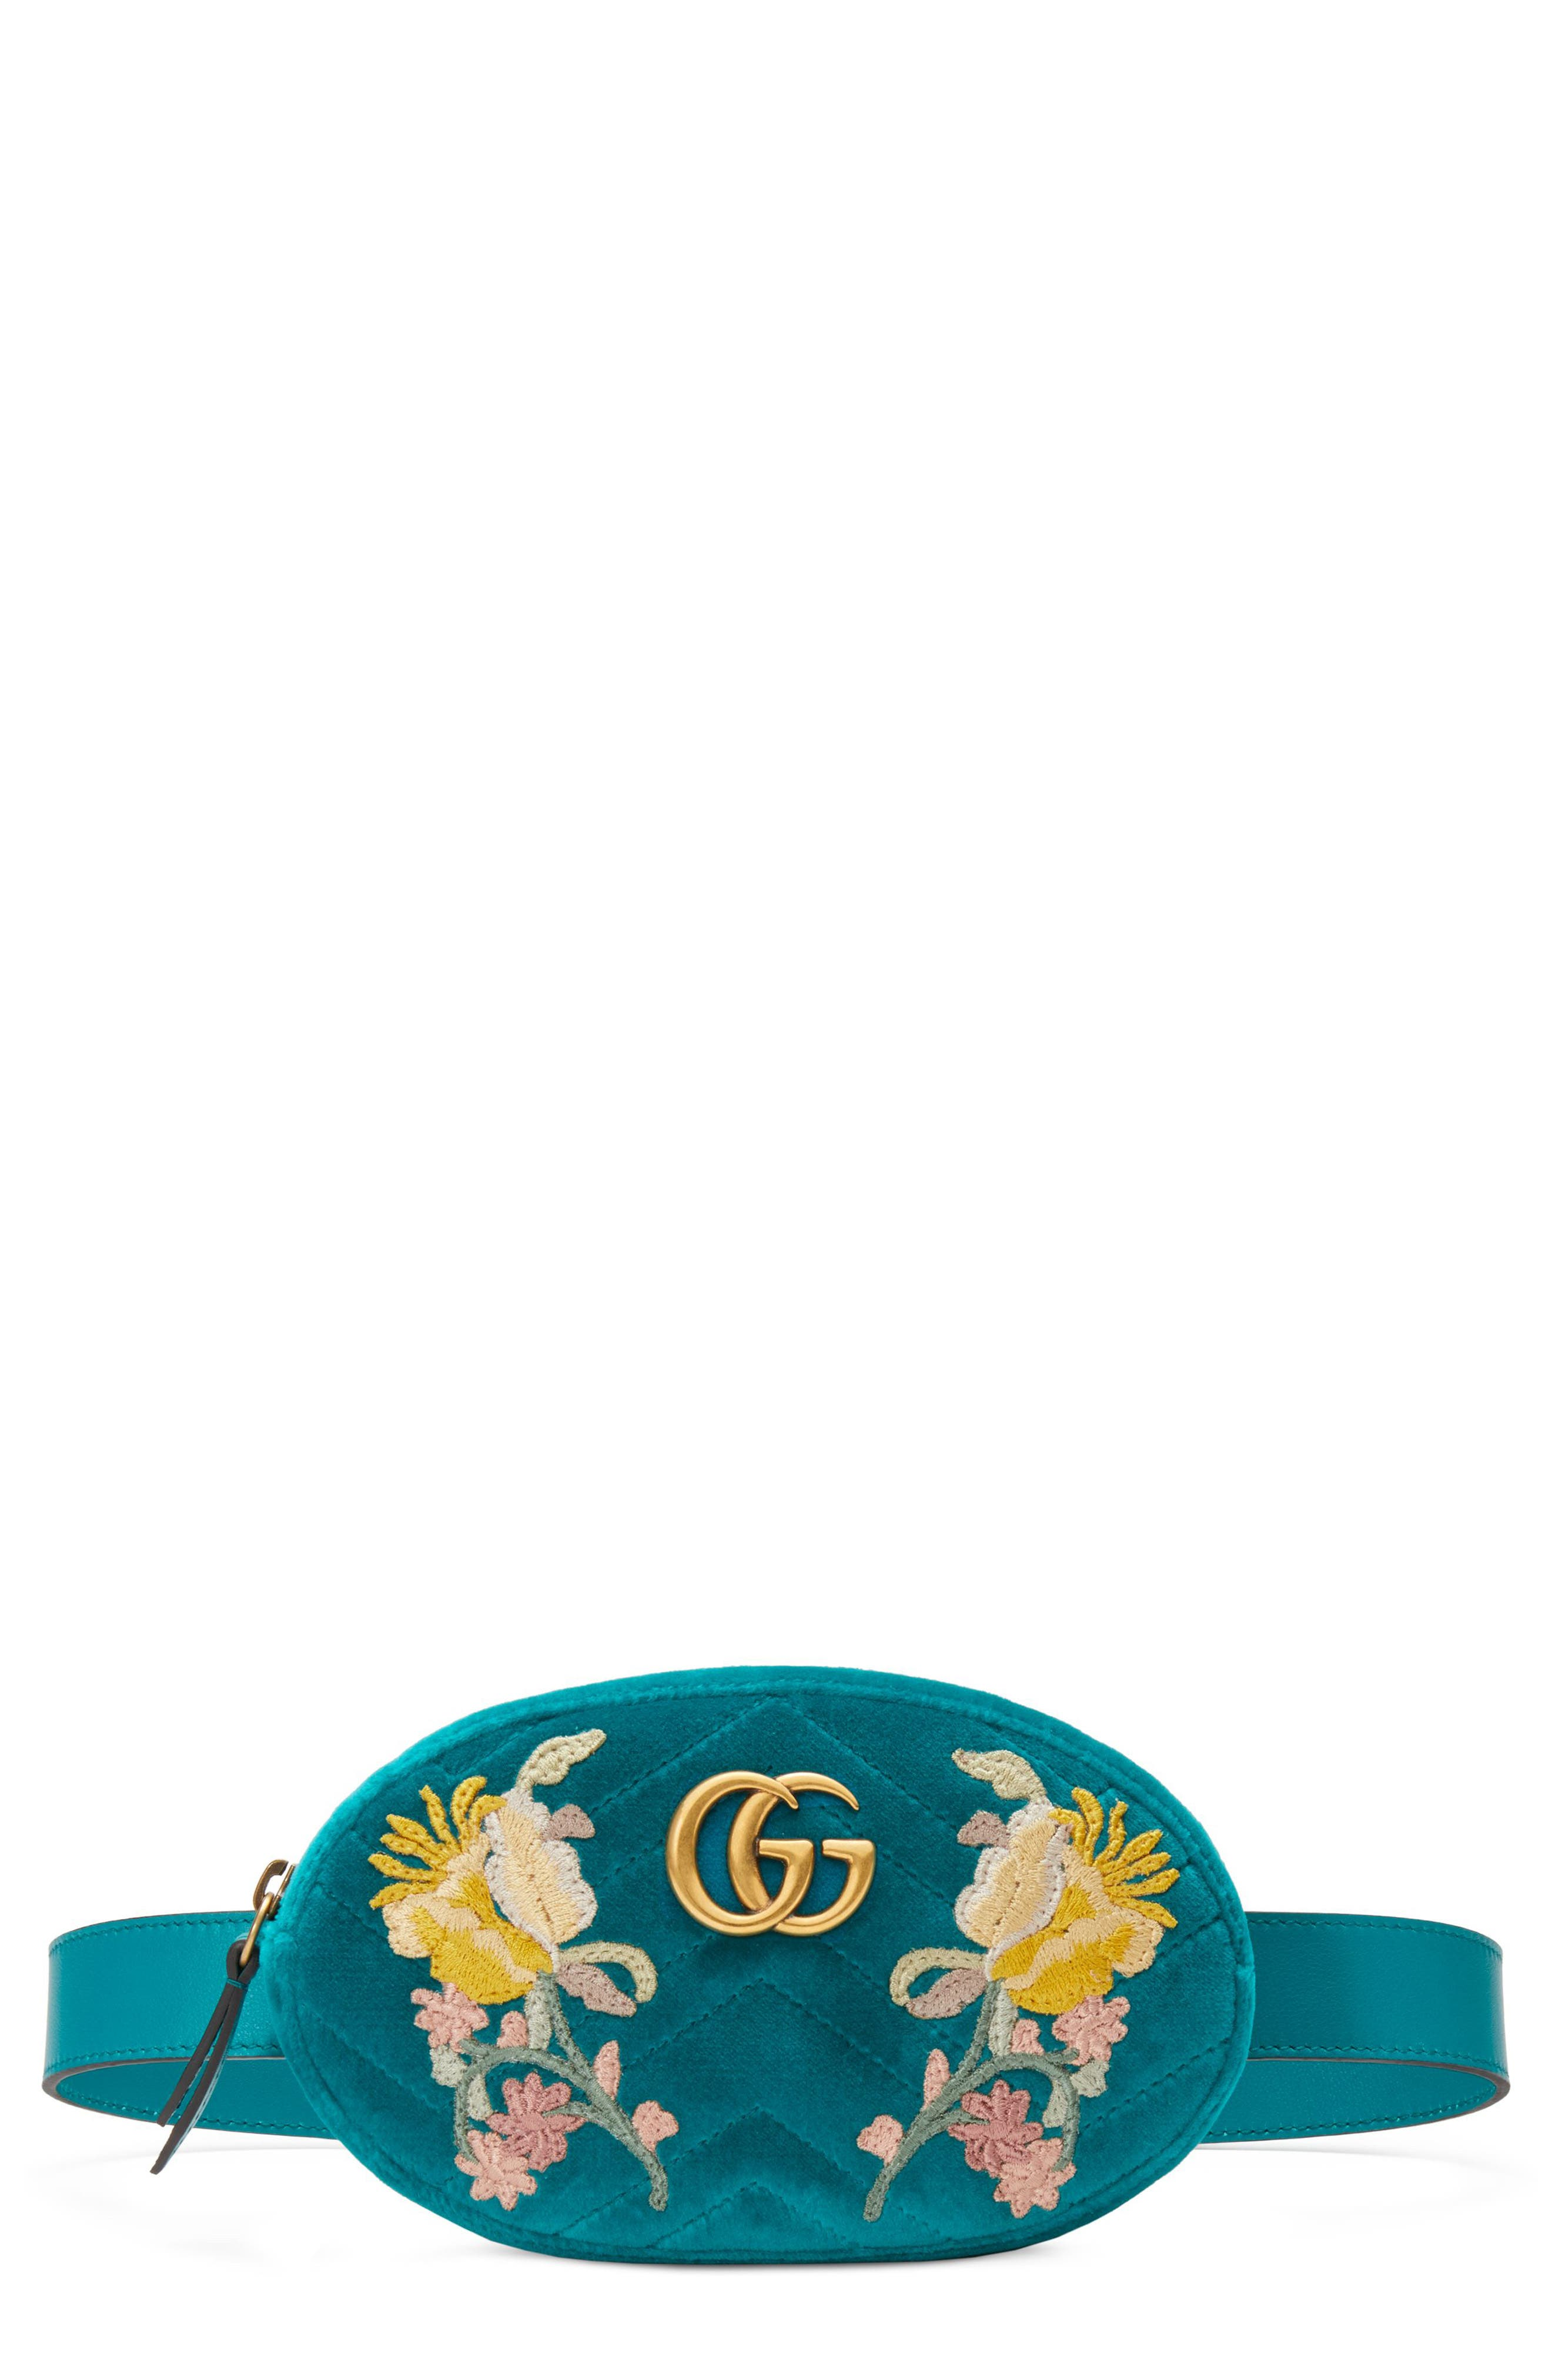 GG Marmont 2.0 Embroidered Velvet Belt Bag,                         Main,                         color, 440